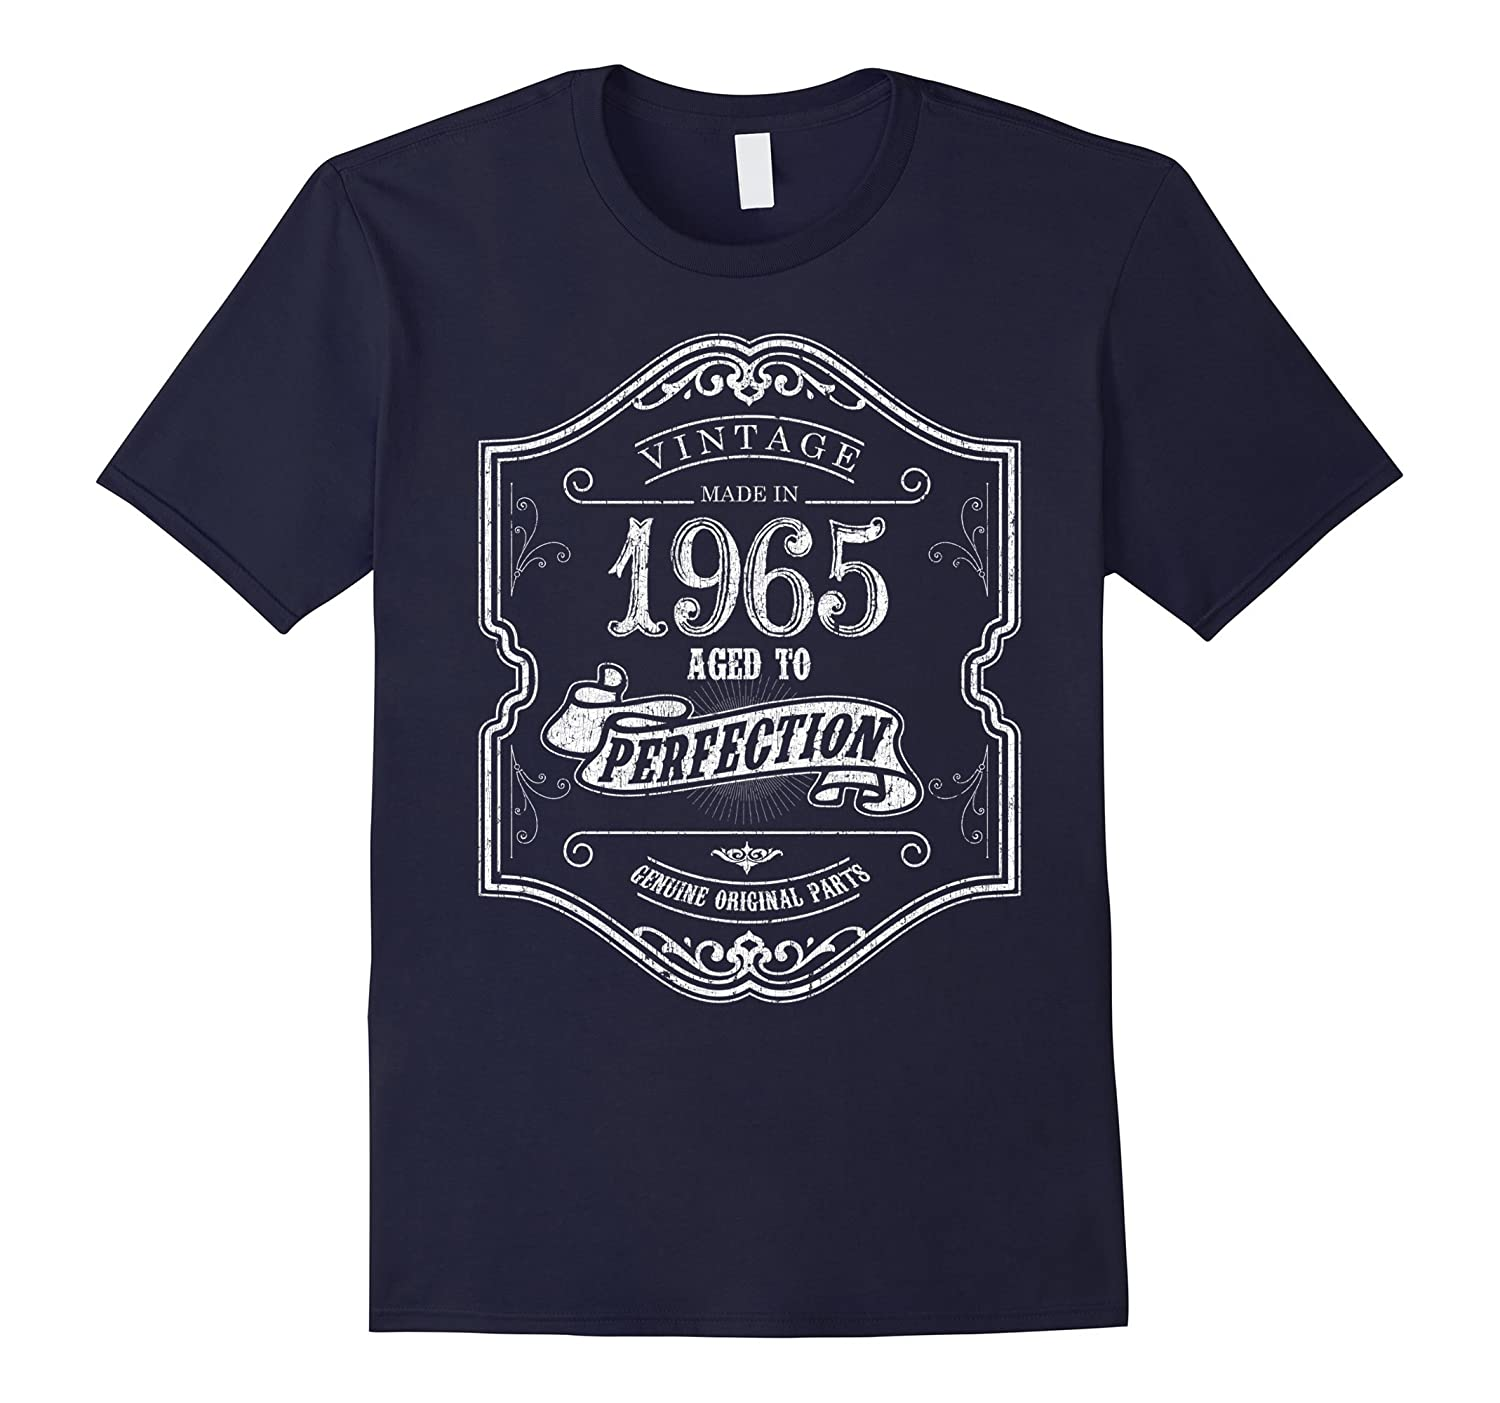 Born in 1965 T-shirt, 52 Year old birthday gift, 1965, 52nd-FL